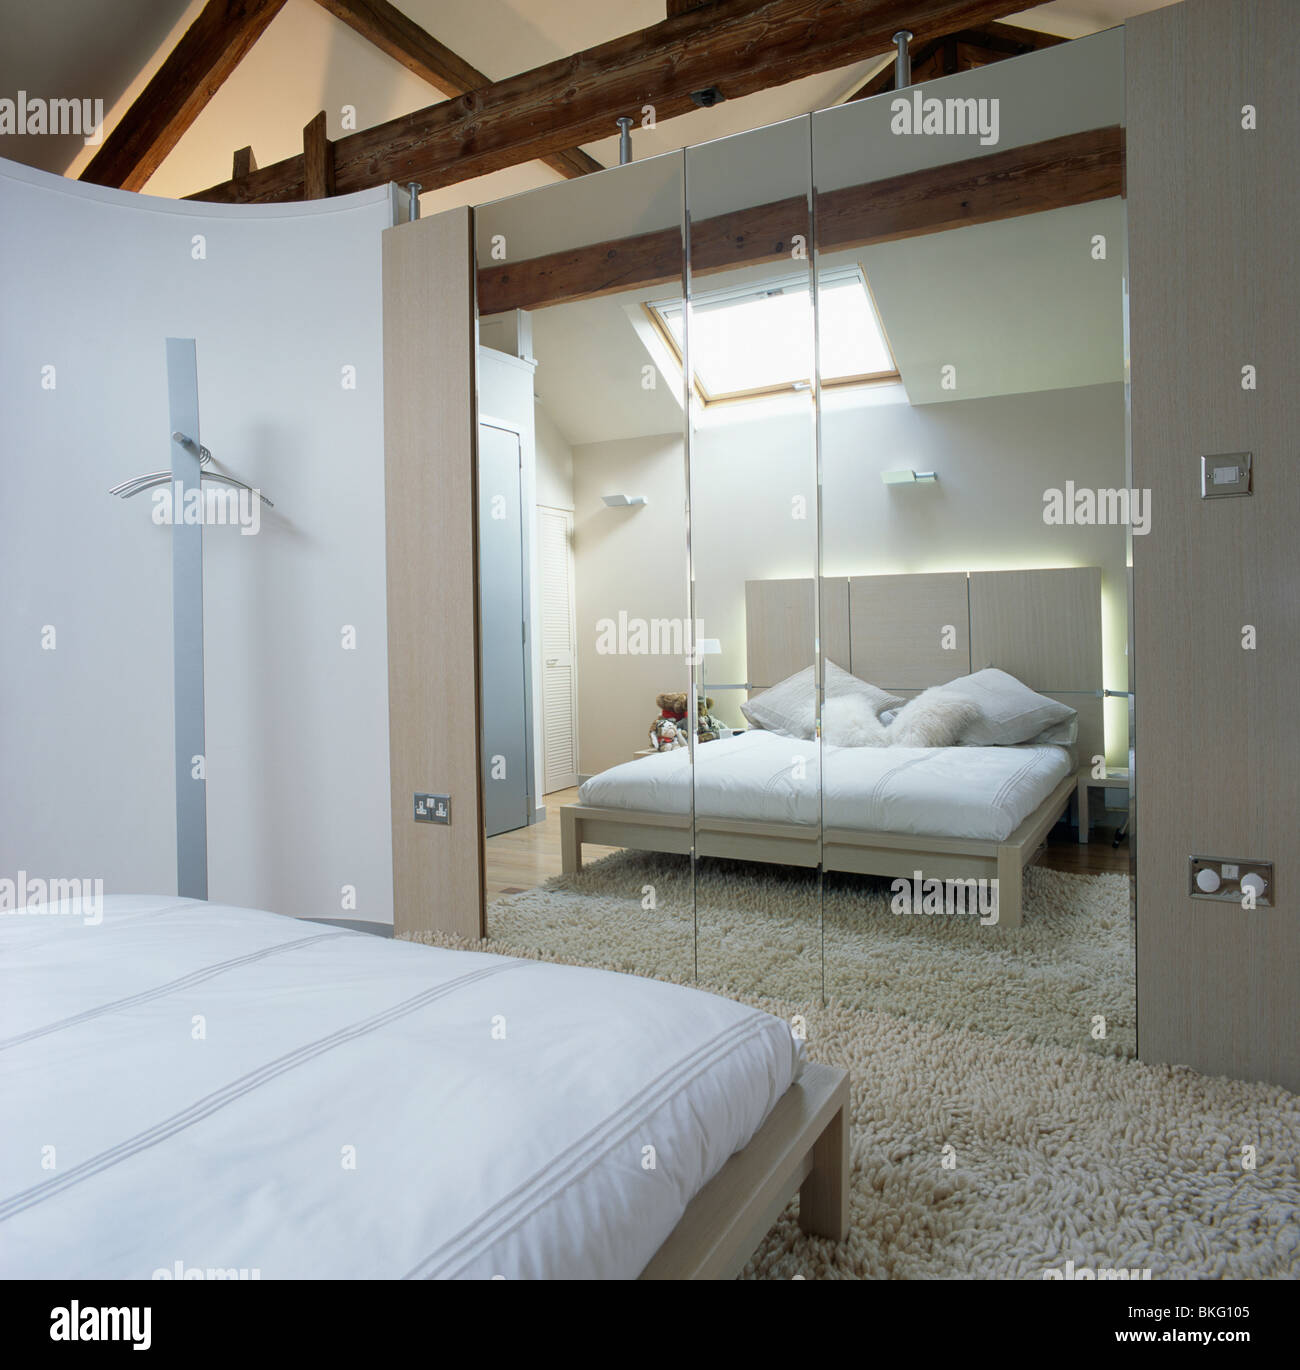 Mirrored Wall Tiles Opposite Bed With White Linen In Modern White Stock Photo Alamy